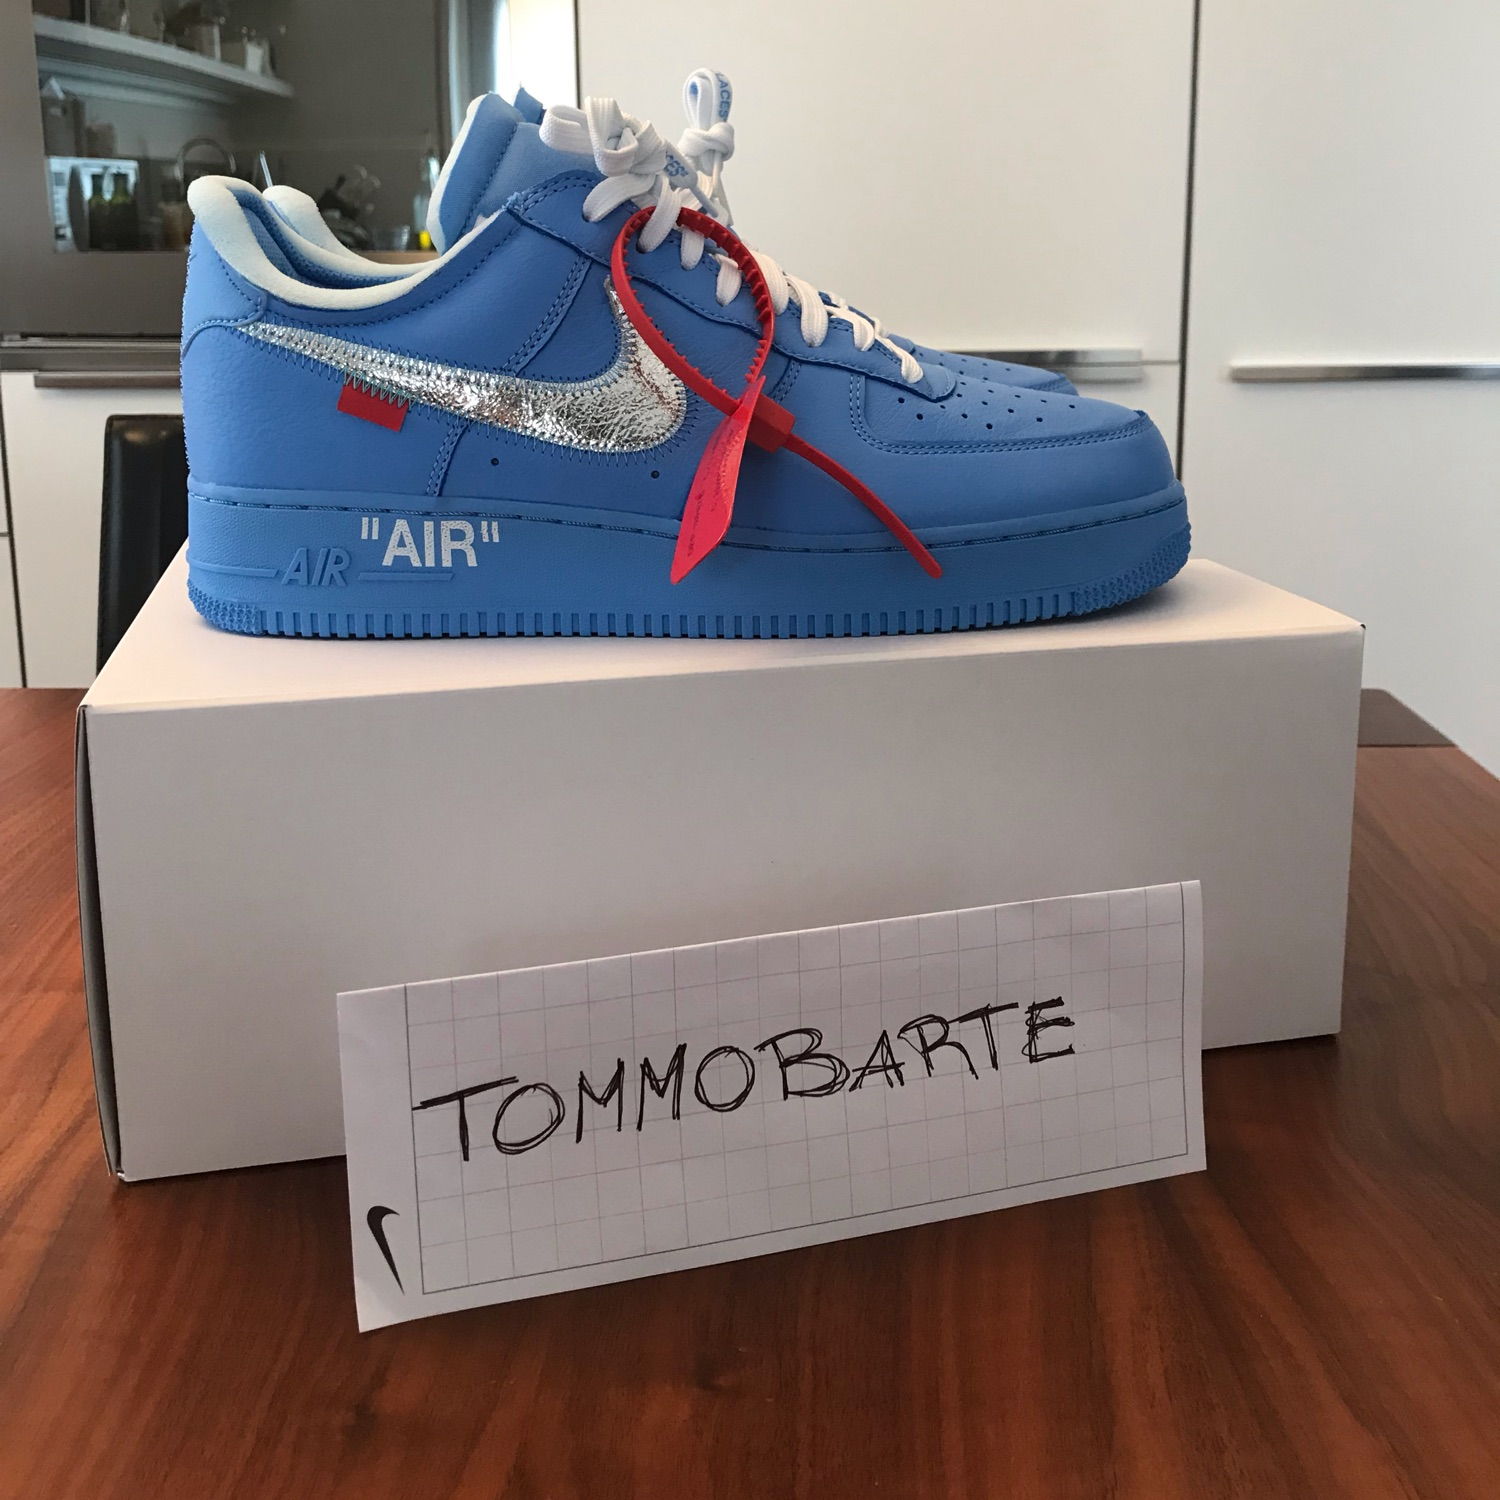 Nike X Off-White Air Force Af 1 Low Mca